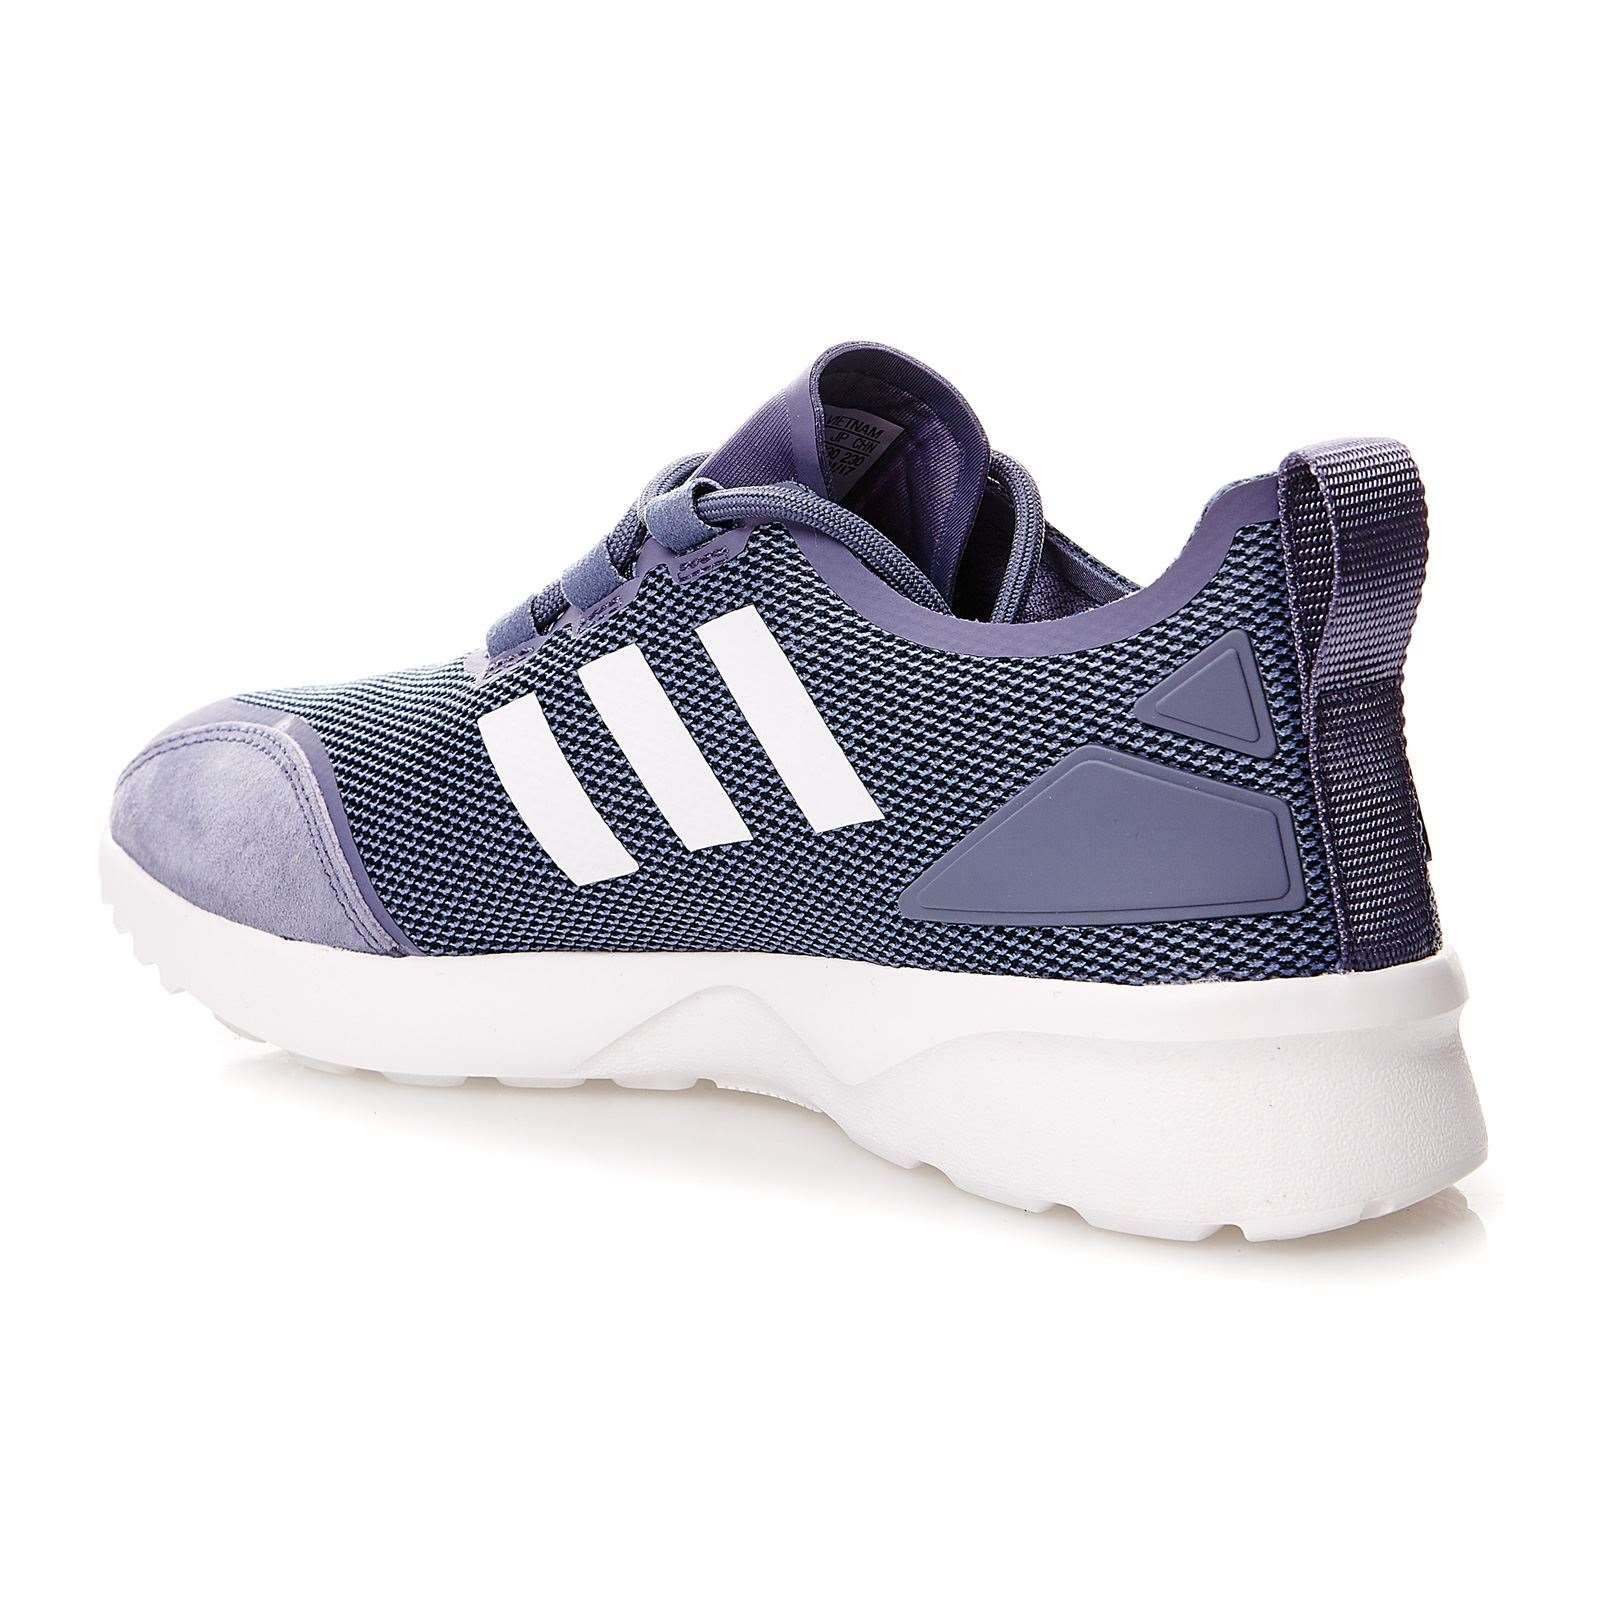 Flux Verve Mauve Mode W Baskets Zx Adv uOPkXZi